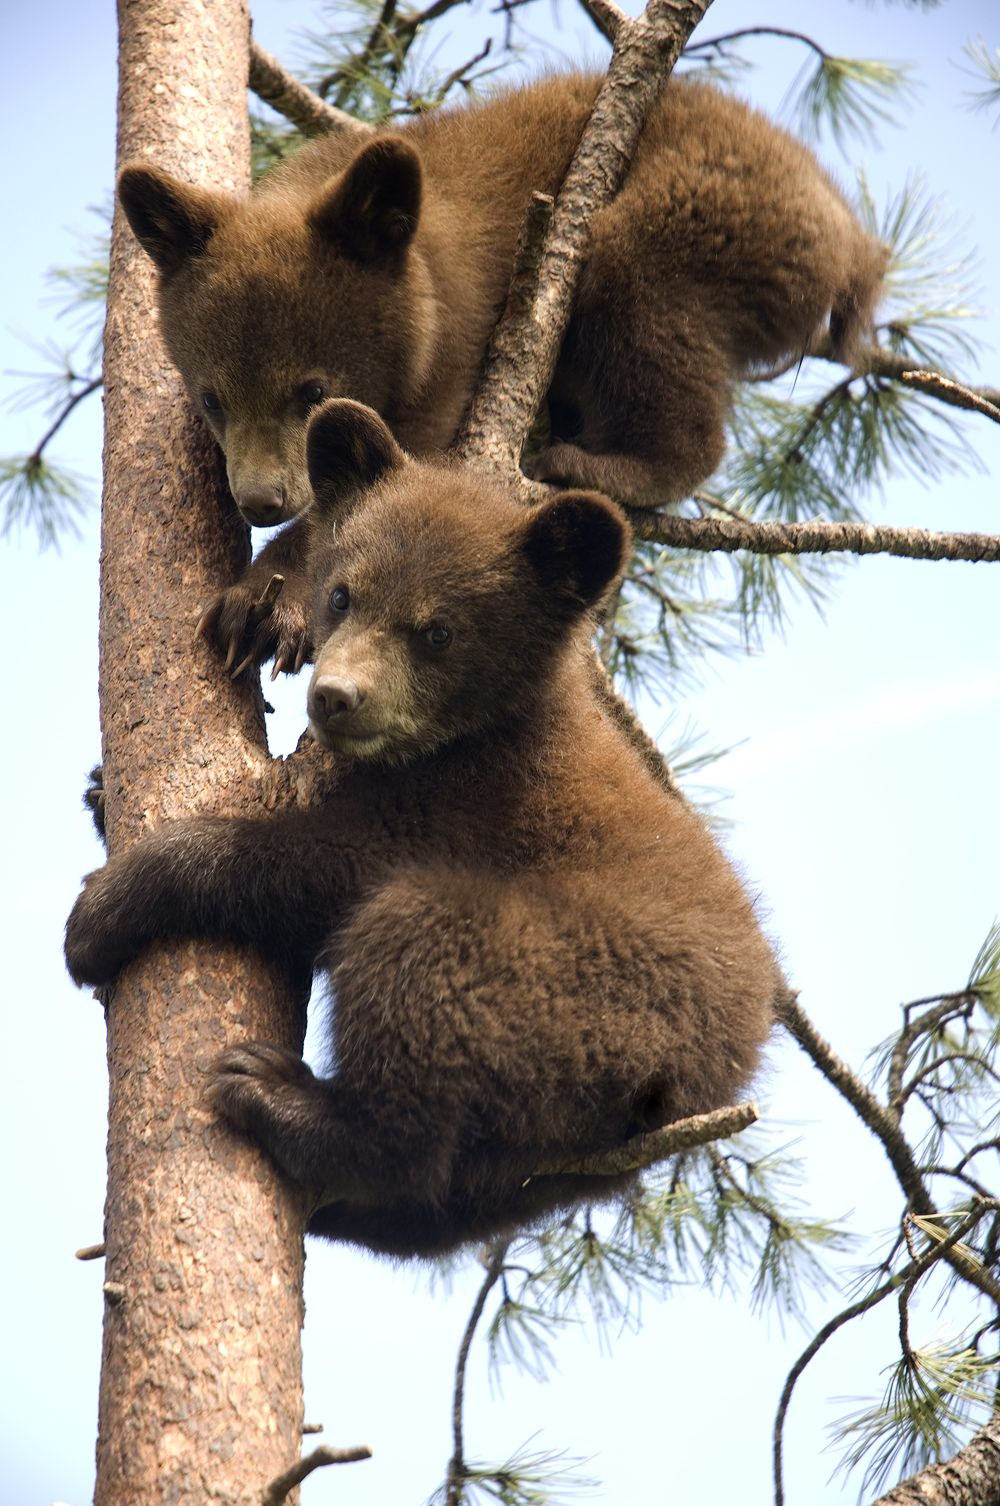 See these adorable #bear cubs and other wildlife at Bear Country USA - 9 miles from #RapidCity #SouthDakota